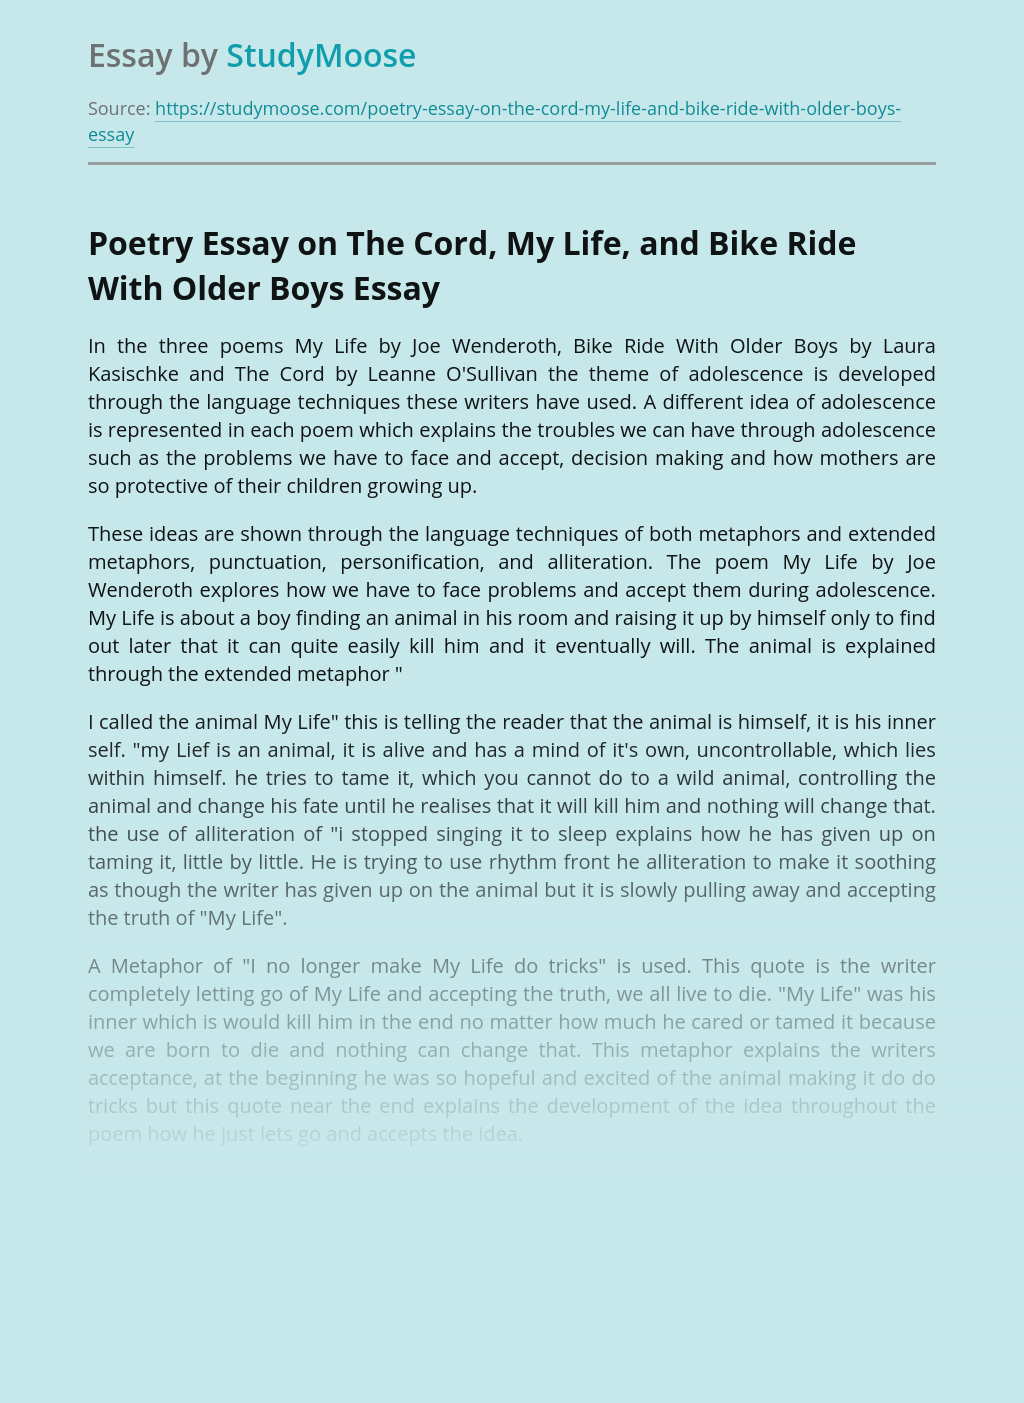 Poetry Essay on The Cord, My Life, and Bike Ride With Older Boys